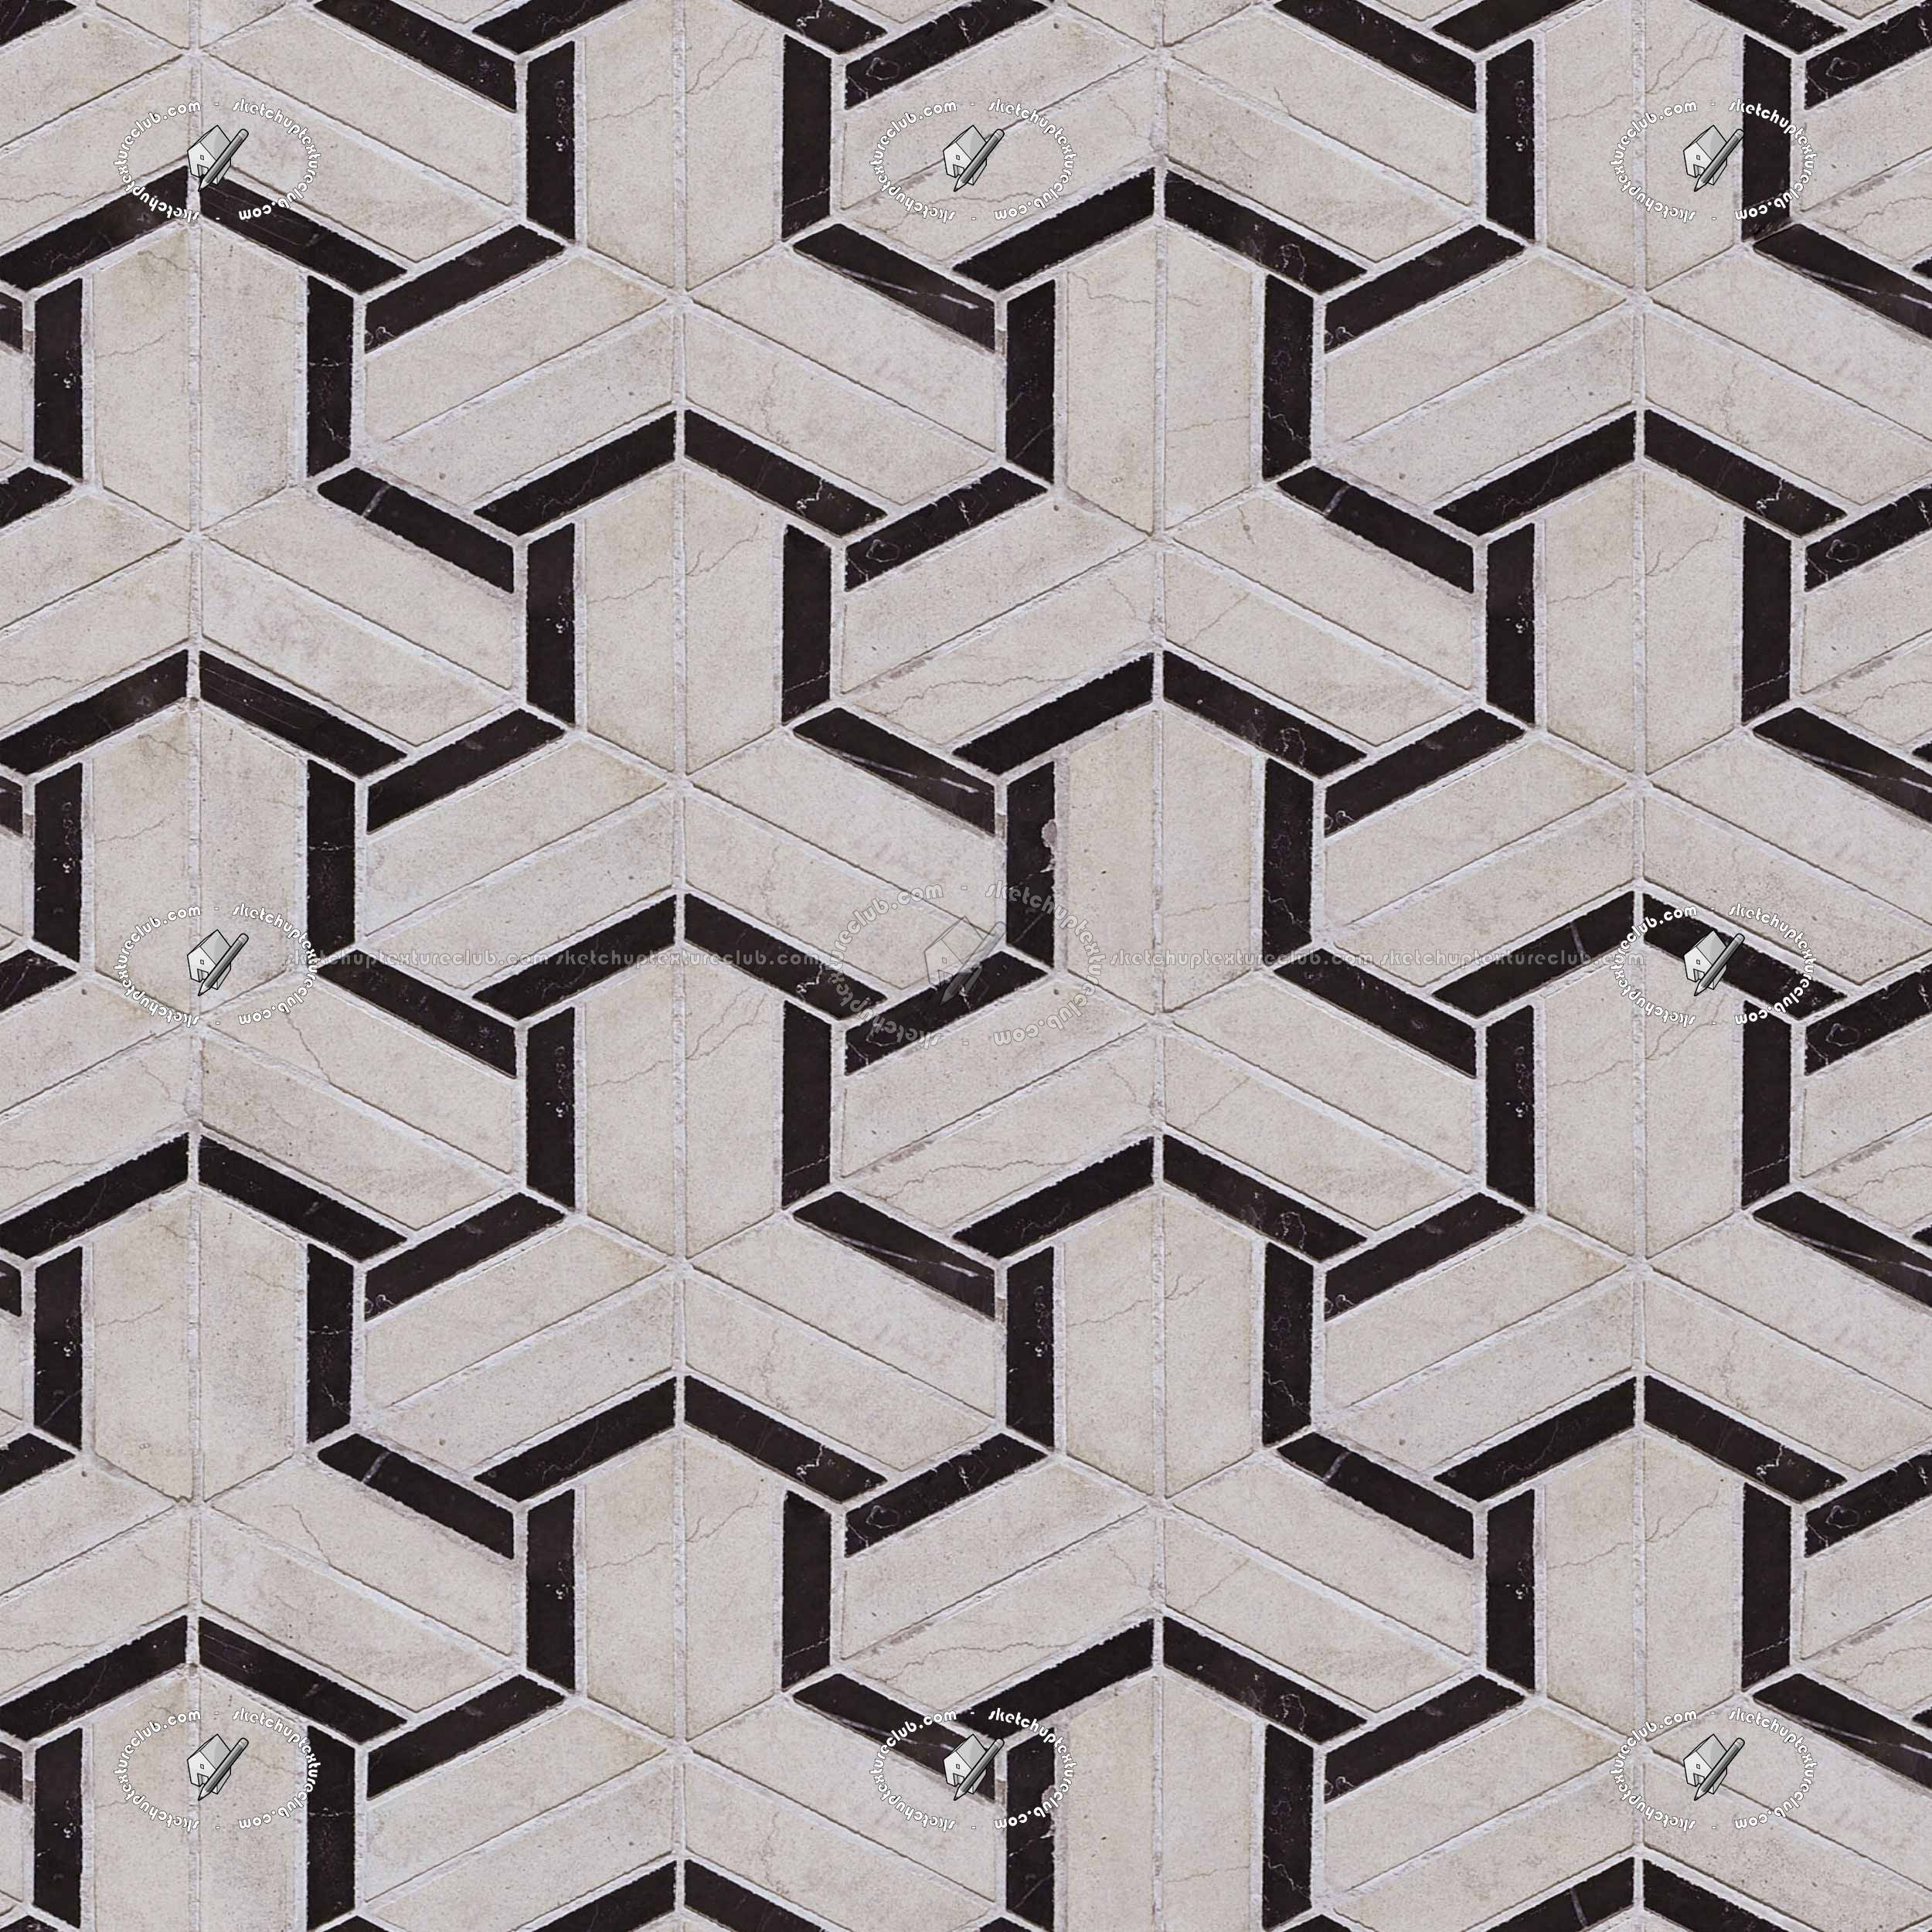 Geometric Marble Tiles Patterns Texture Seamless